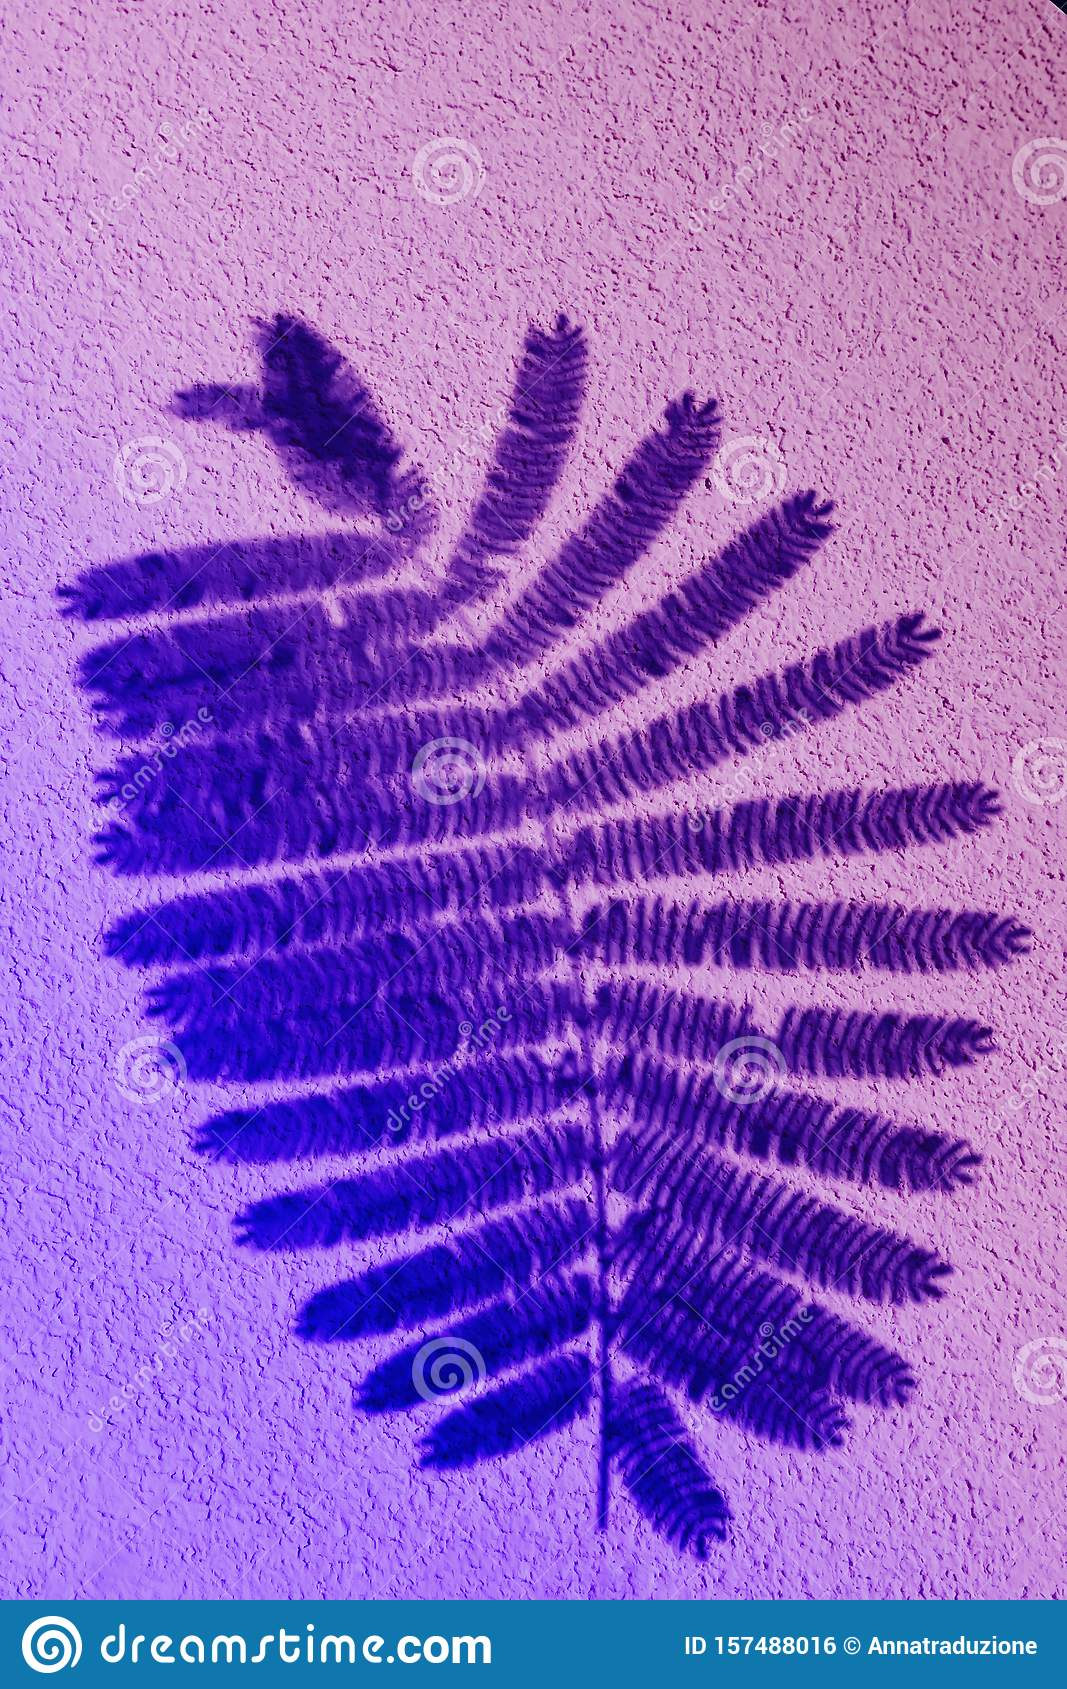 Fern leaf in color gradient.abstract leaves and shadow background.For create design layout, neon leaves composition